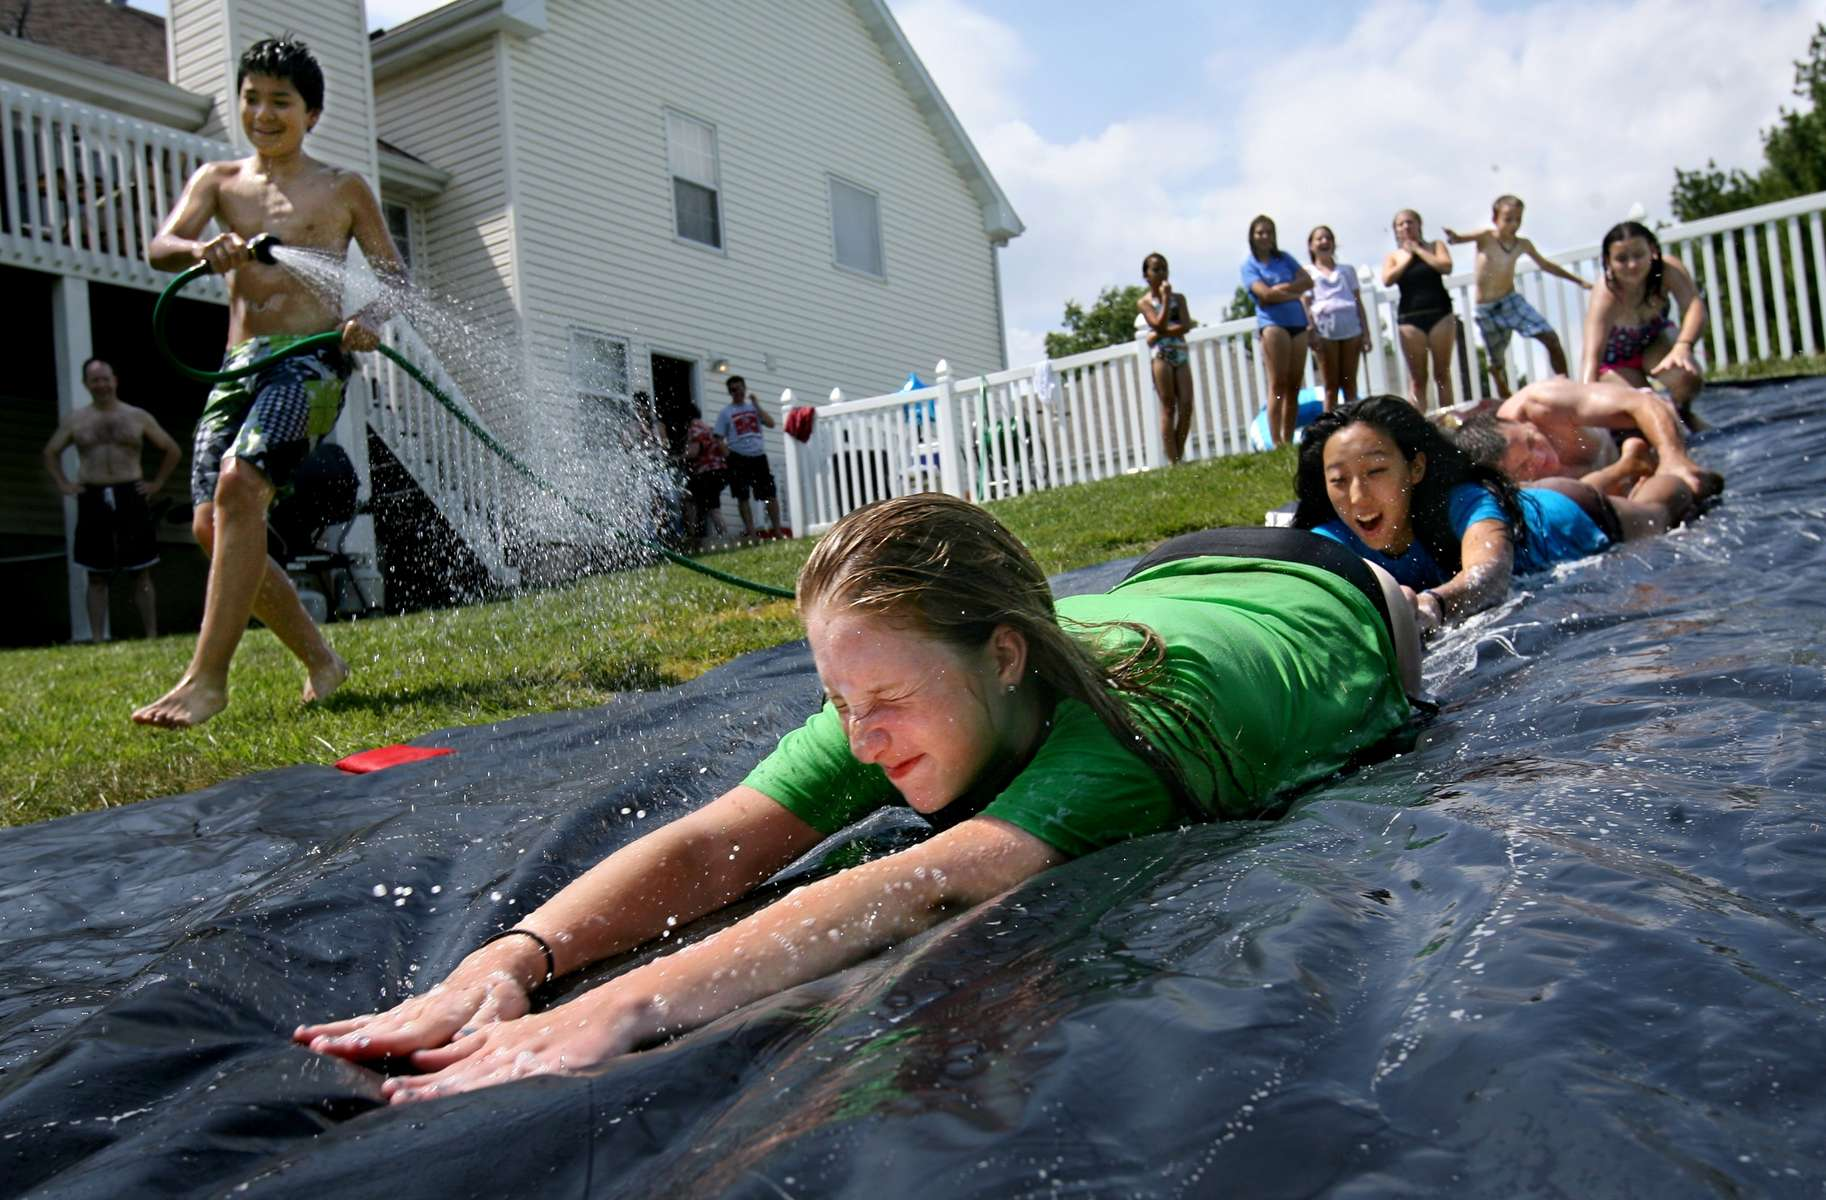 Grace Wickham (front), Rachel Hutson (center), Matt Wickham, and Reilly Newton get some help from Noah Cochran (left) as he hoses down the plastic sheeting while they launch themselves down a homemade Slip 'n Slide during a party at the Wickham's home in Weldon Spring on Monday May 28, 2012.  The Wickhams made the slide from a 100 foot roll of plastic sheeting, some sprinklers to wet the slide and dish soap to make it slippery. Photo By David Carson, dcarson@post-dispatch.com